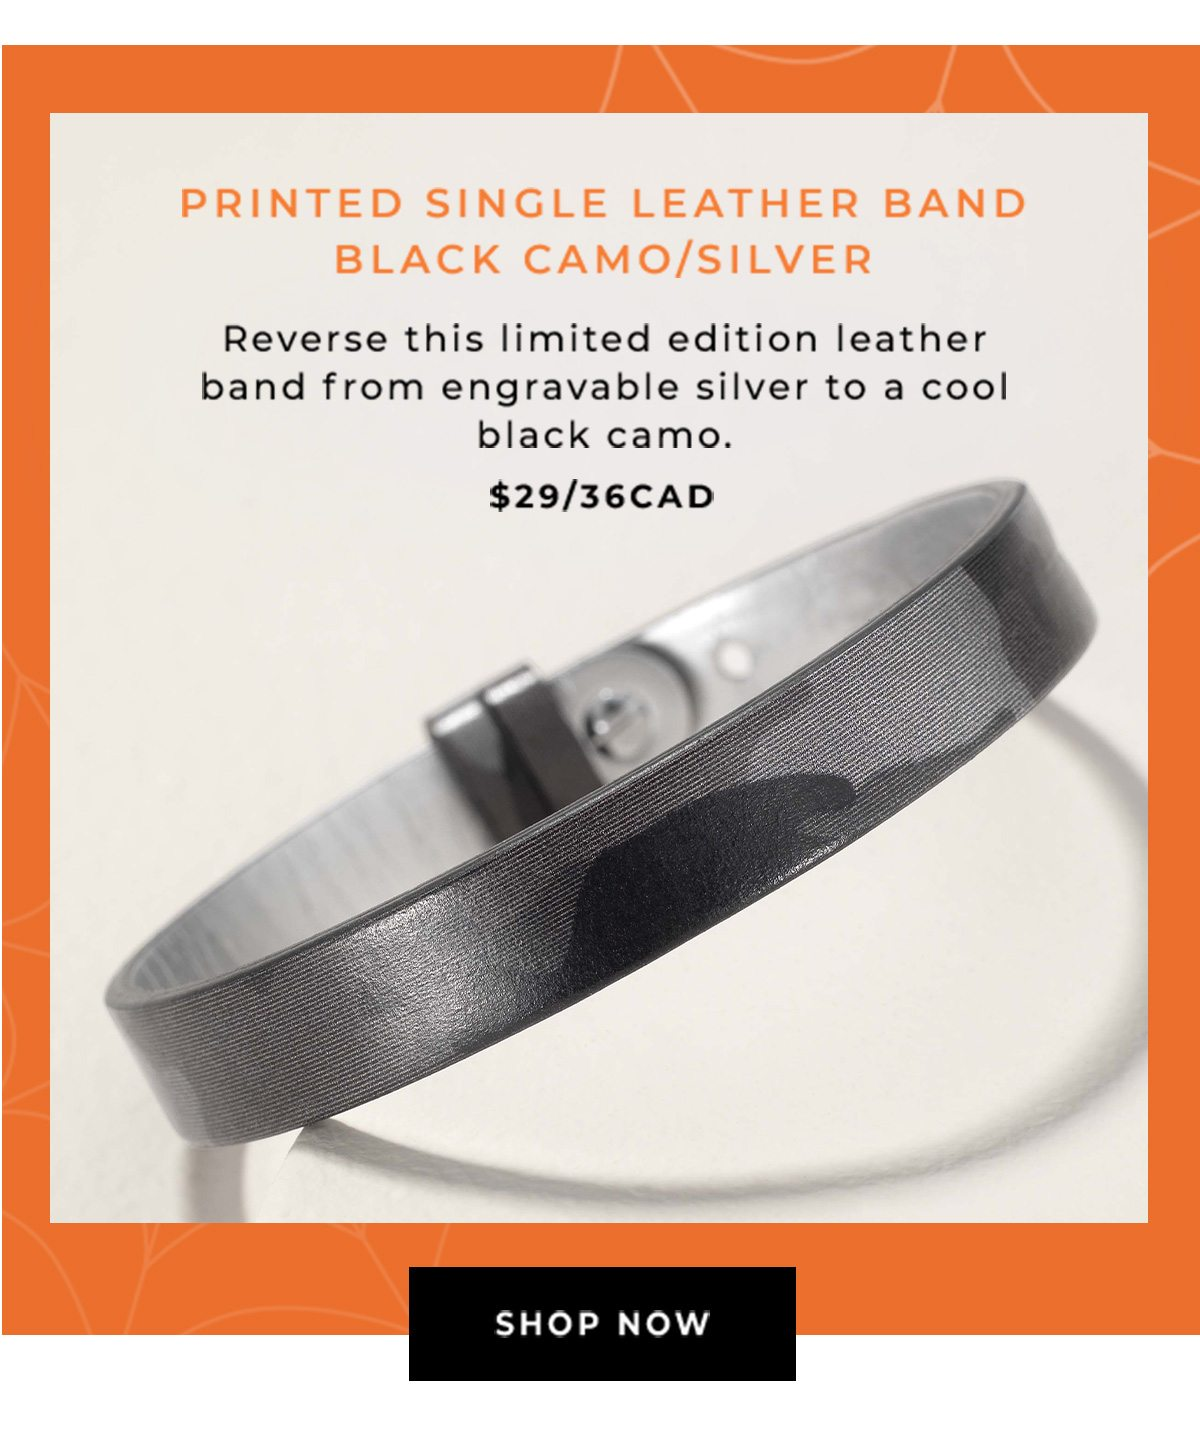 Printed SIngle Leather Band Black Camo/Silver - SHOP NOW